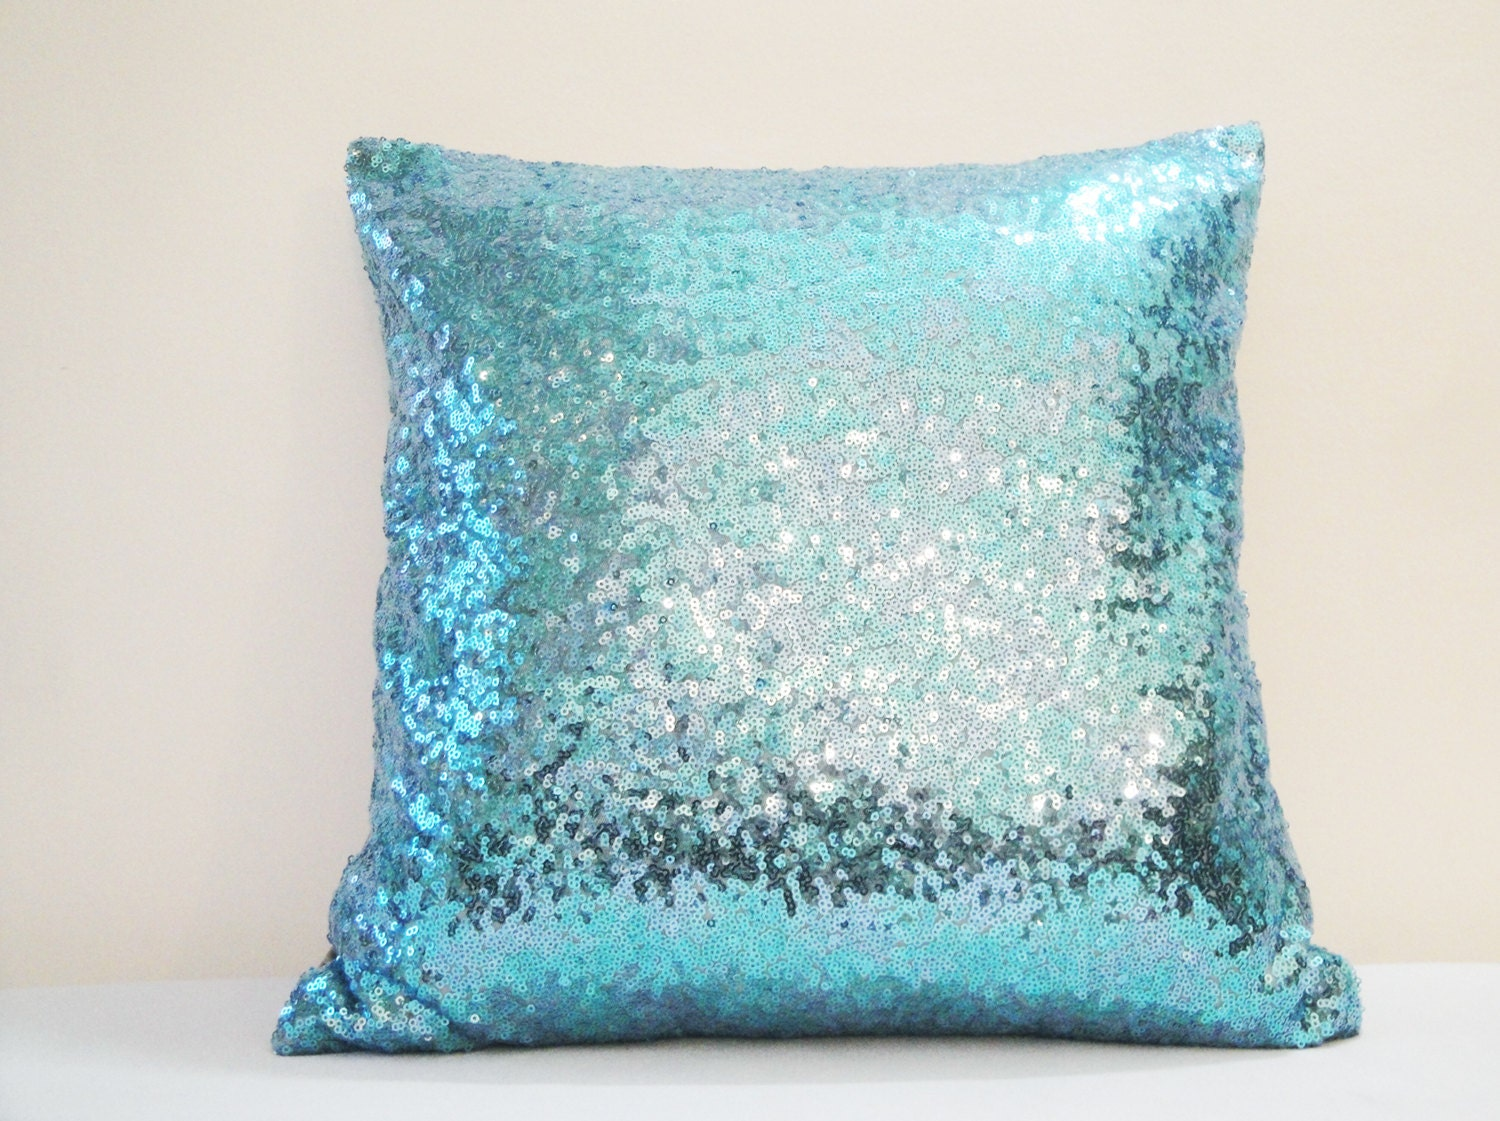 Decorative Pillows With Sequins : Shiny Turquoise Blue Pillow Cover Holiday Decor Sequin